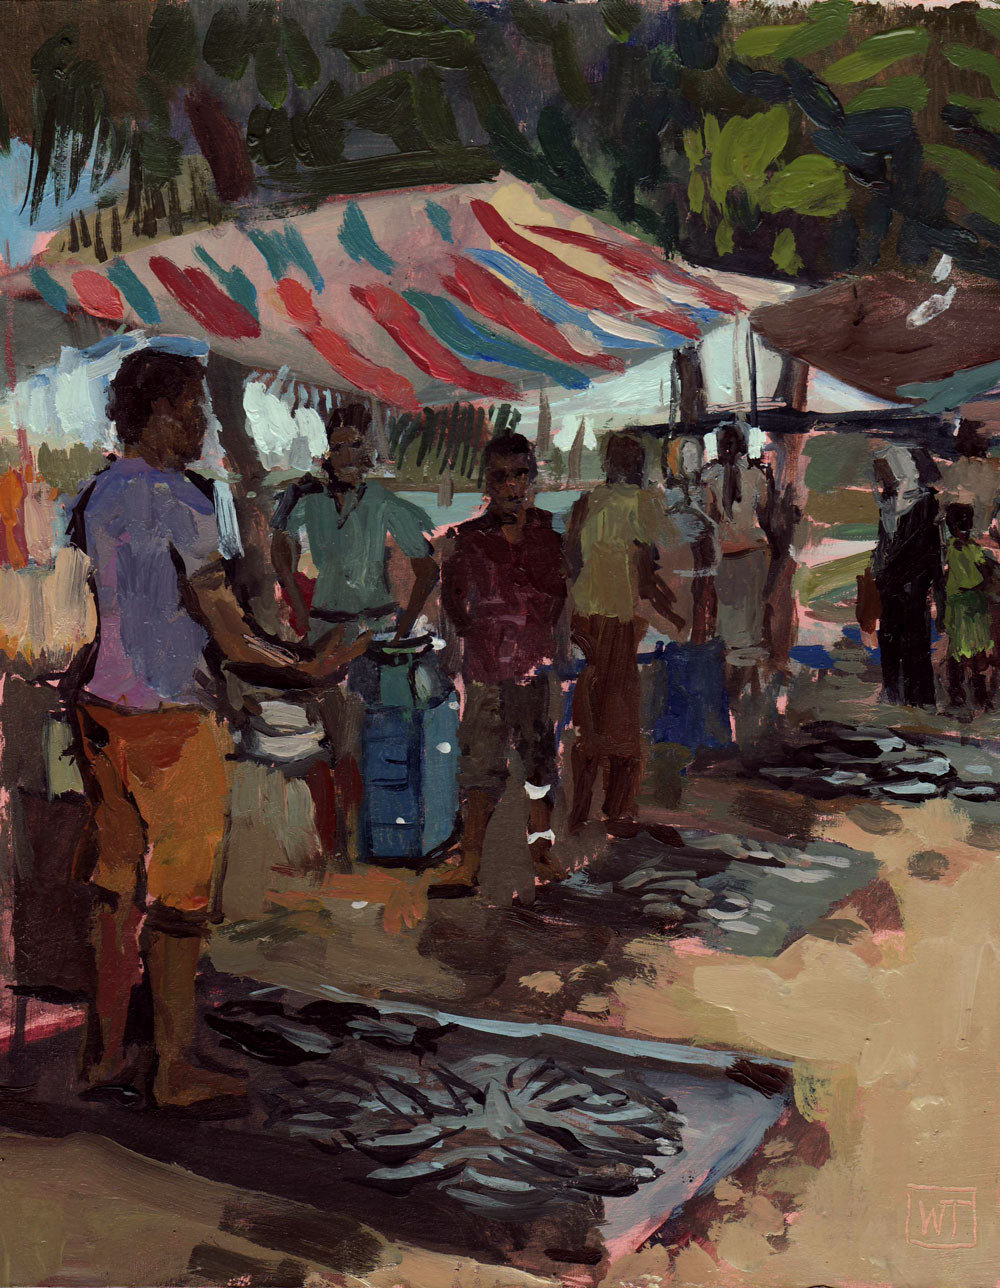 The fish market in Galle